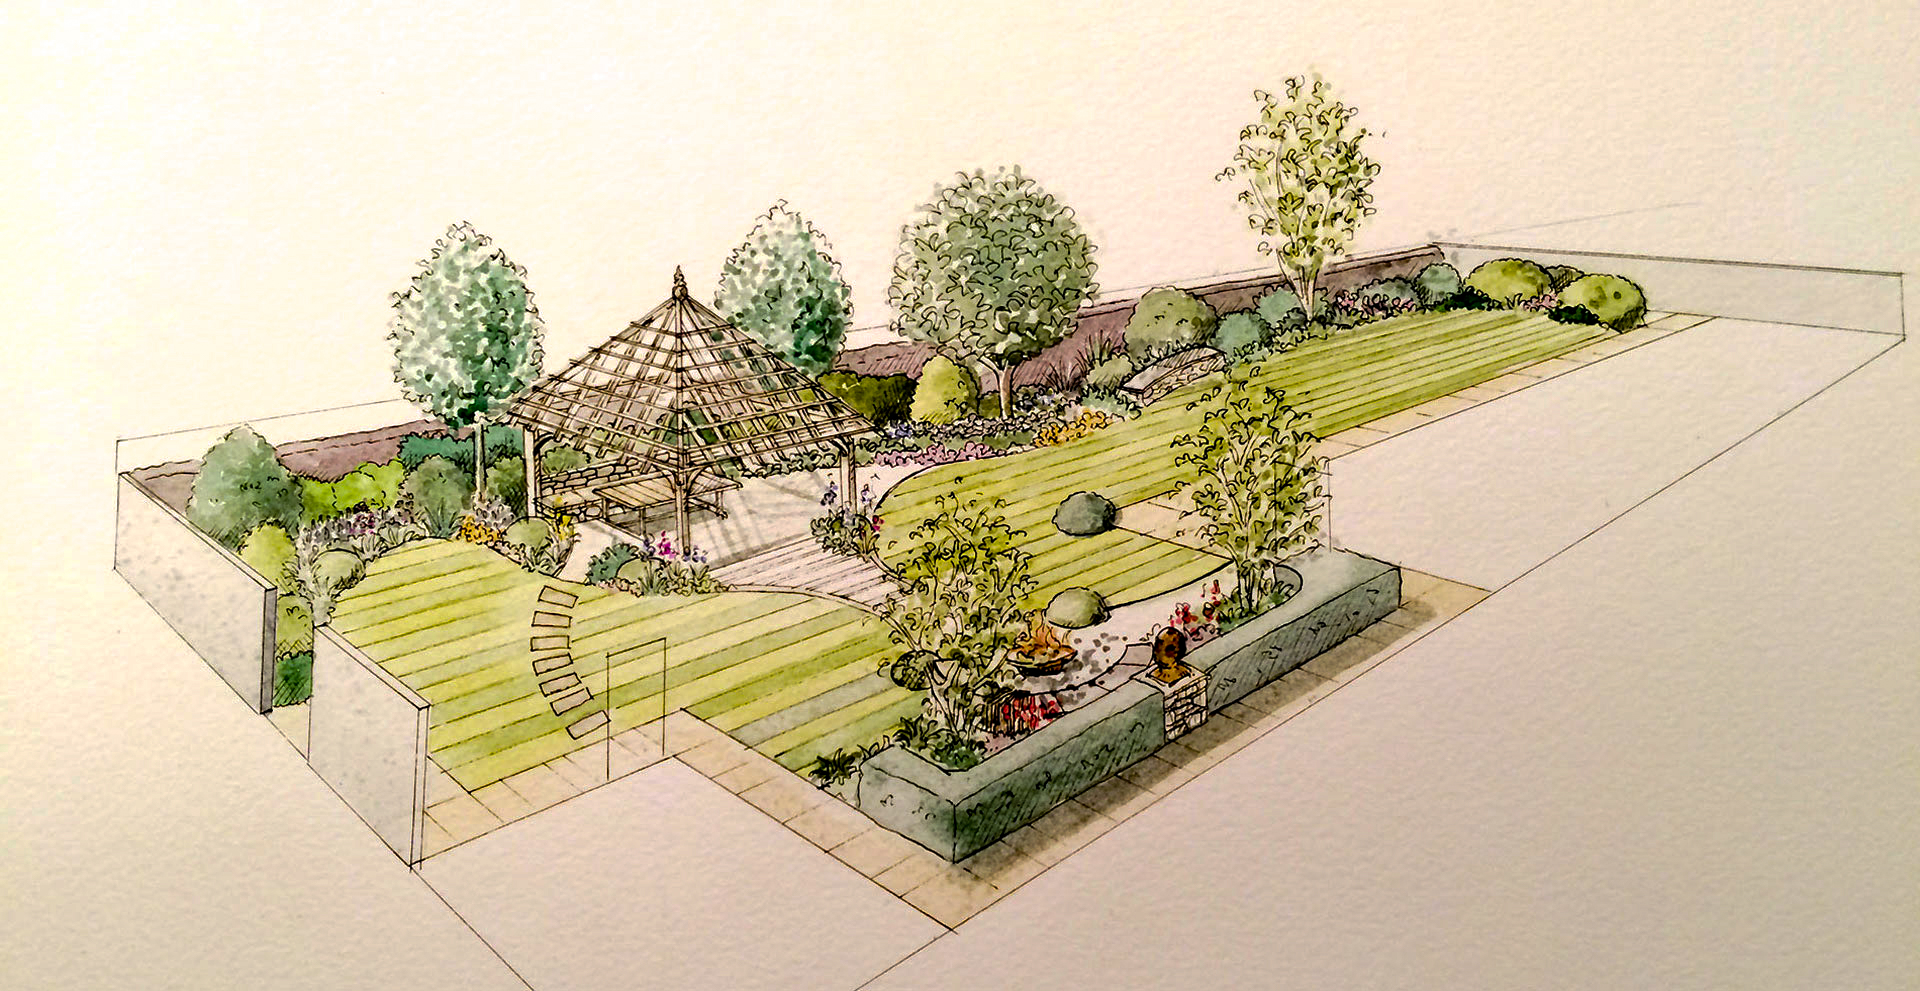 garden design in bournemouth, poole and dorset | tom hill